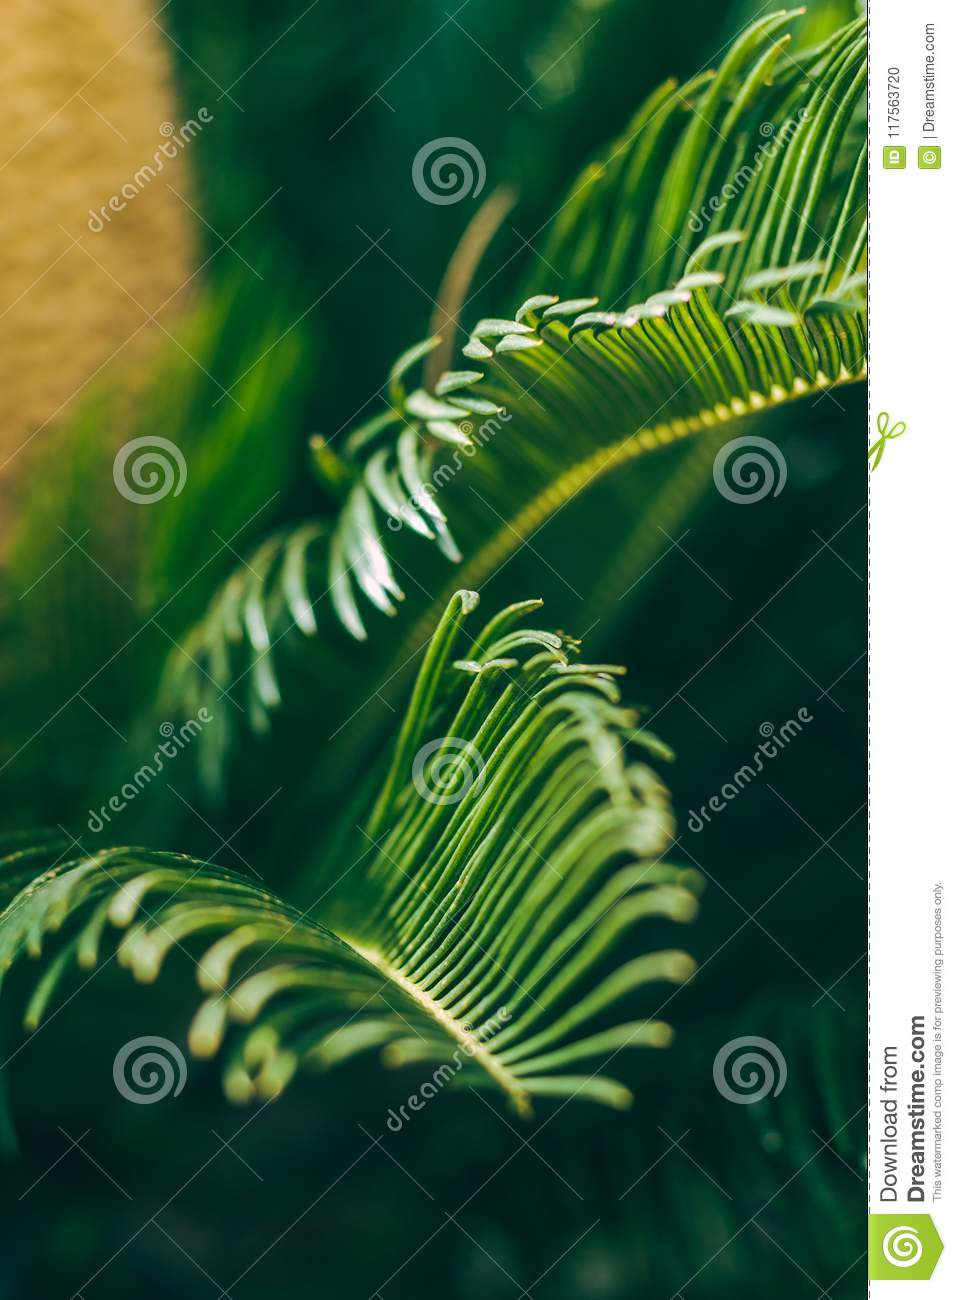 Leaves of tropical palm three. Nature macro. Vertical image.